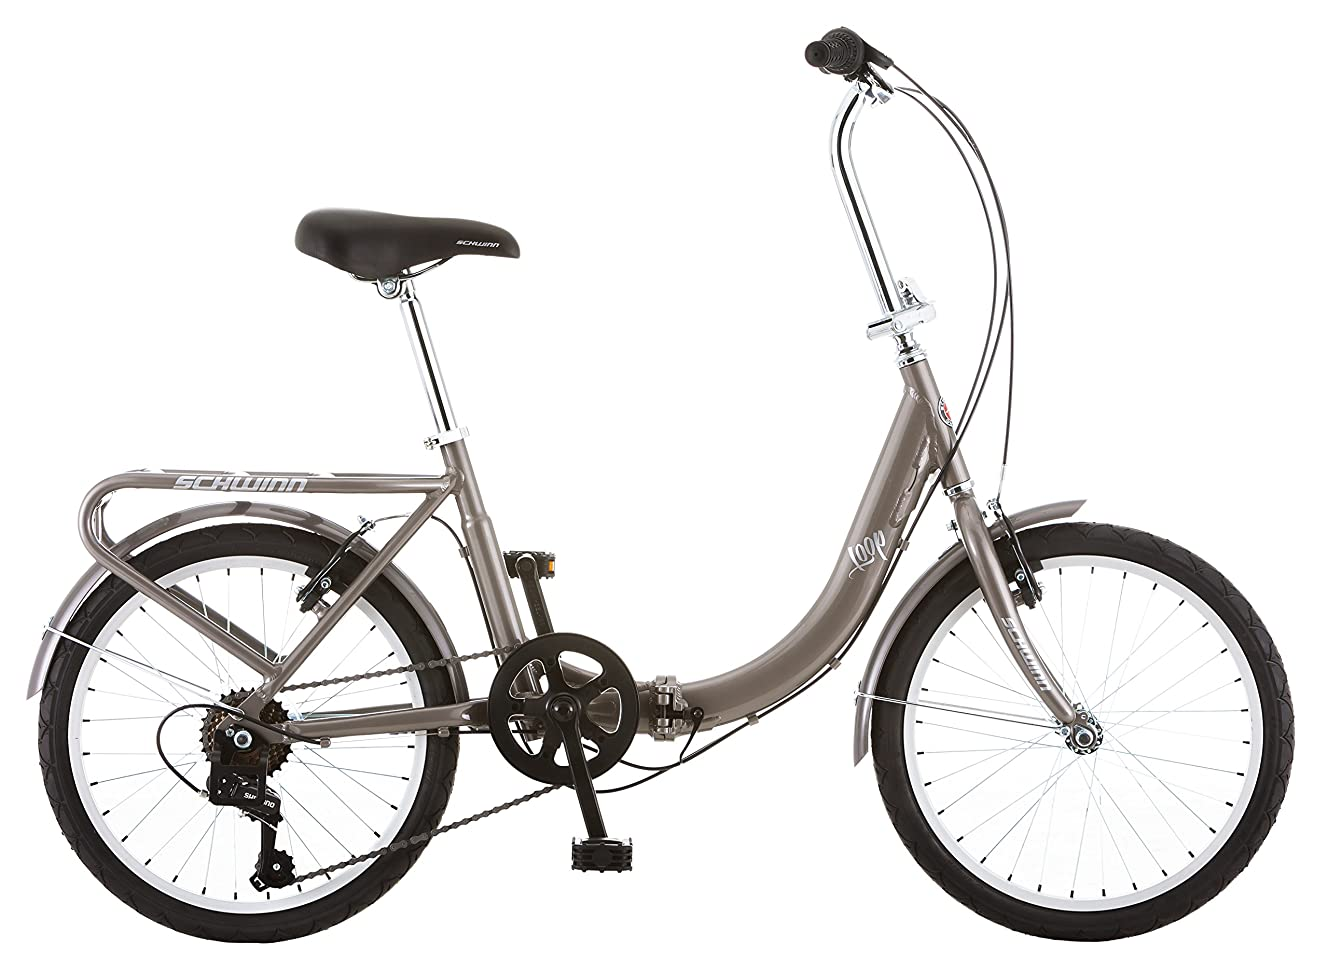 Schwinn Loop Folding Bicycle, Featuring Front and Rear Fenders, Rear Carry Rack, and Kickstand with 7-Speed Drivetrain, Includes Nylon Carrying Bag, 20-Inch Wheels, Silver